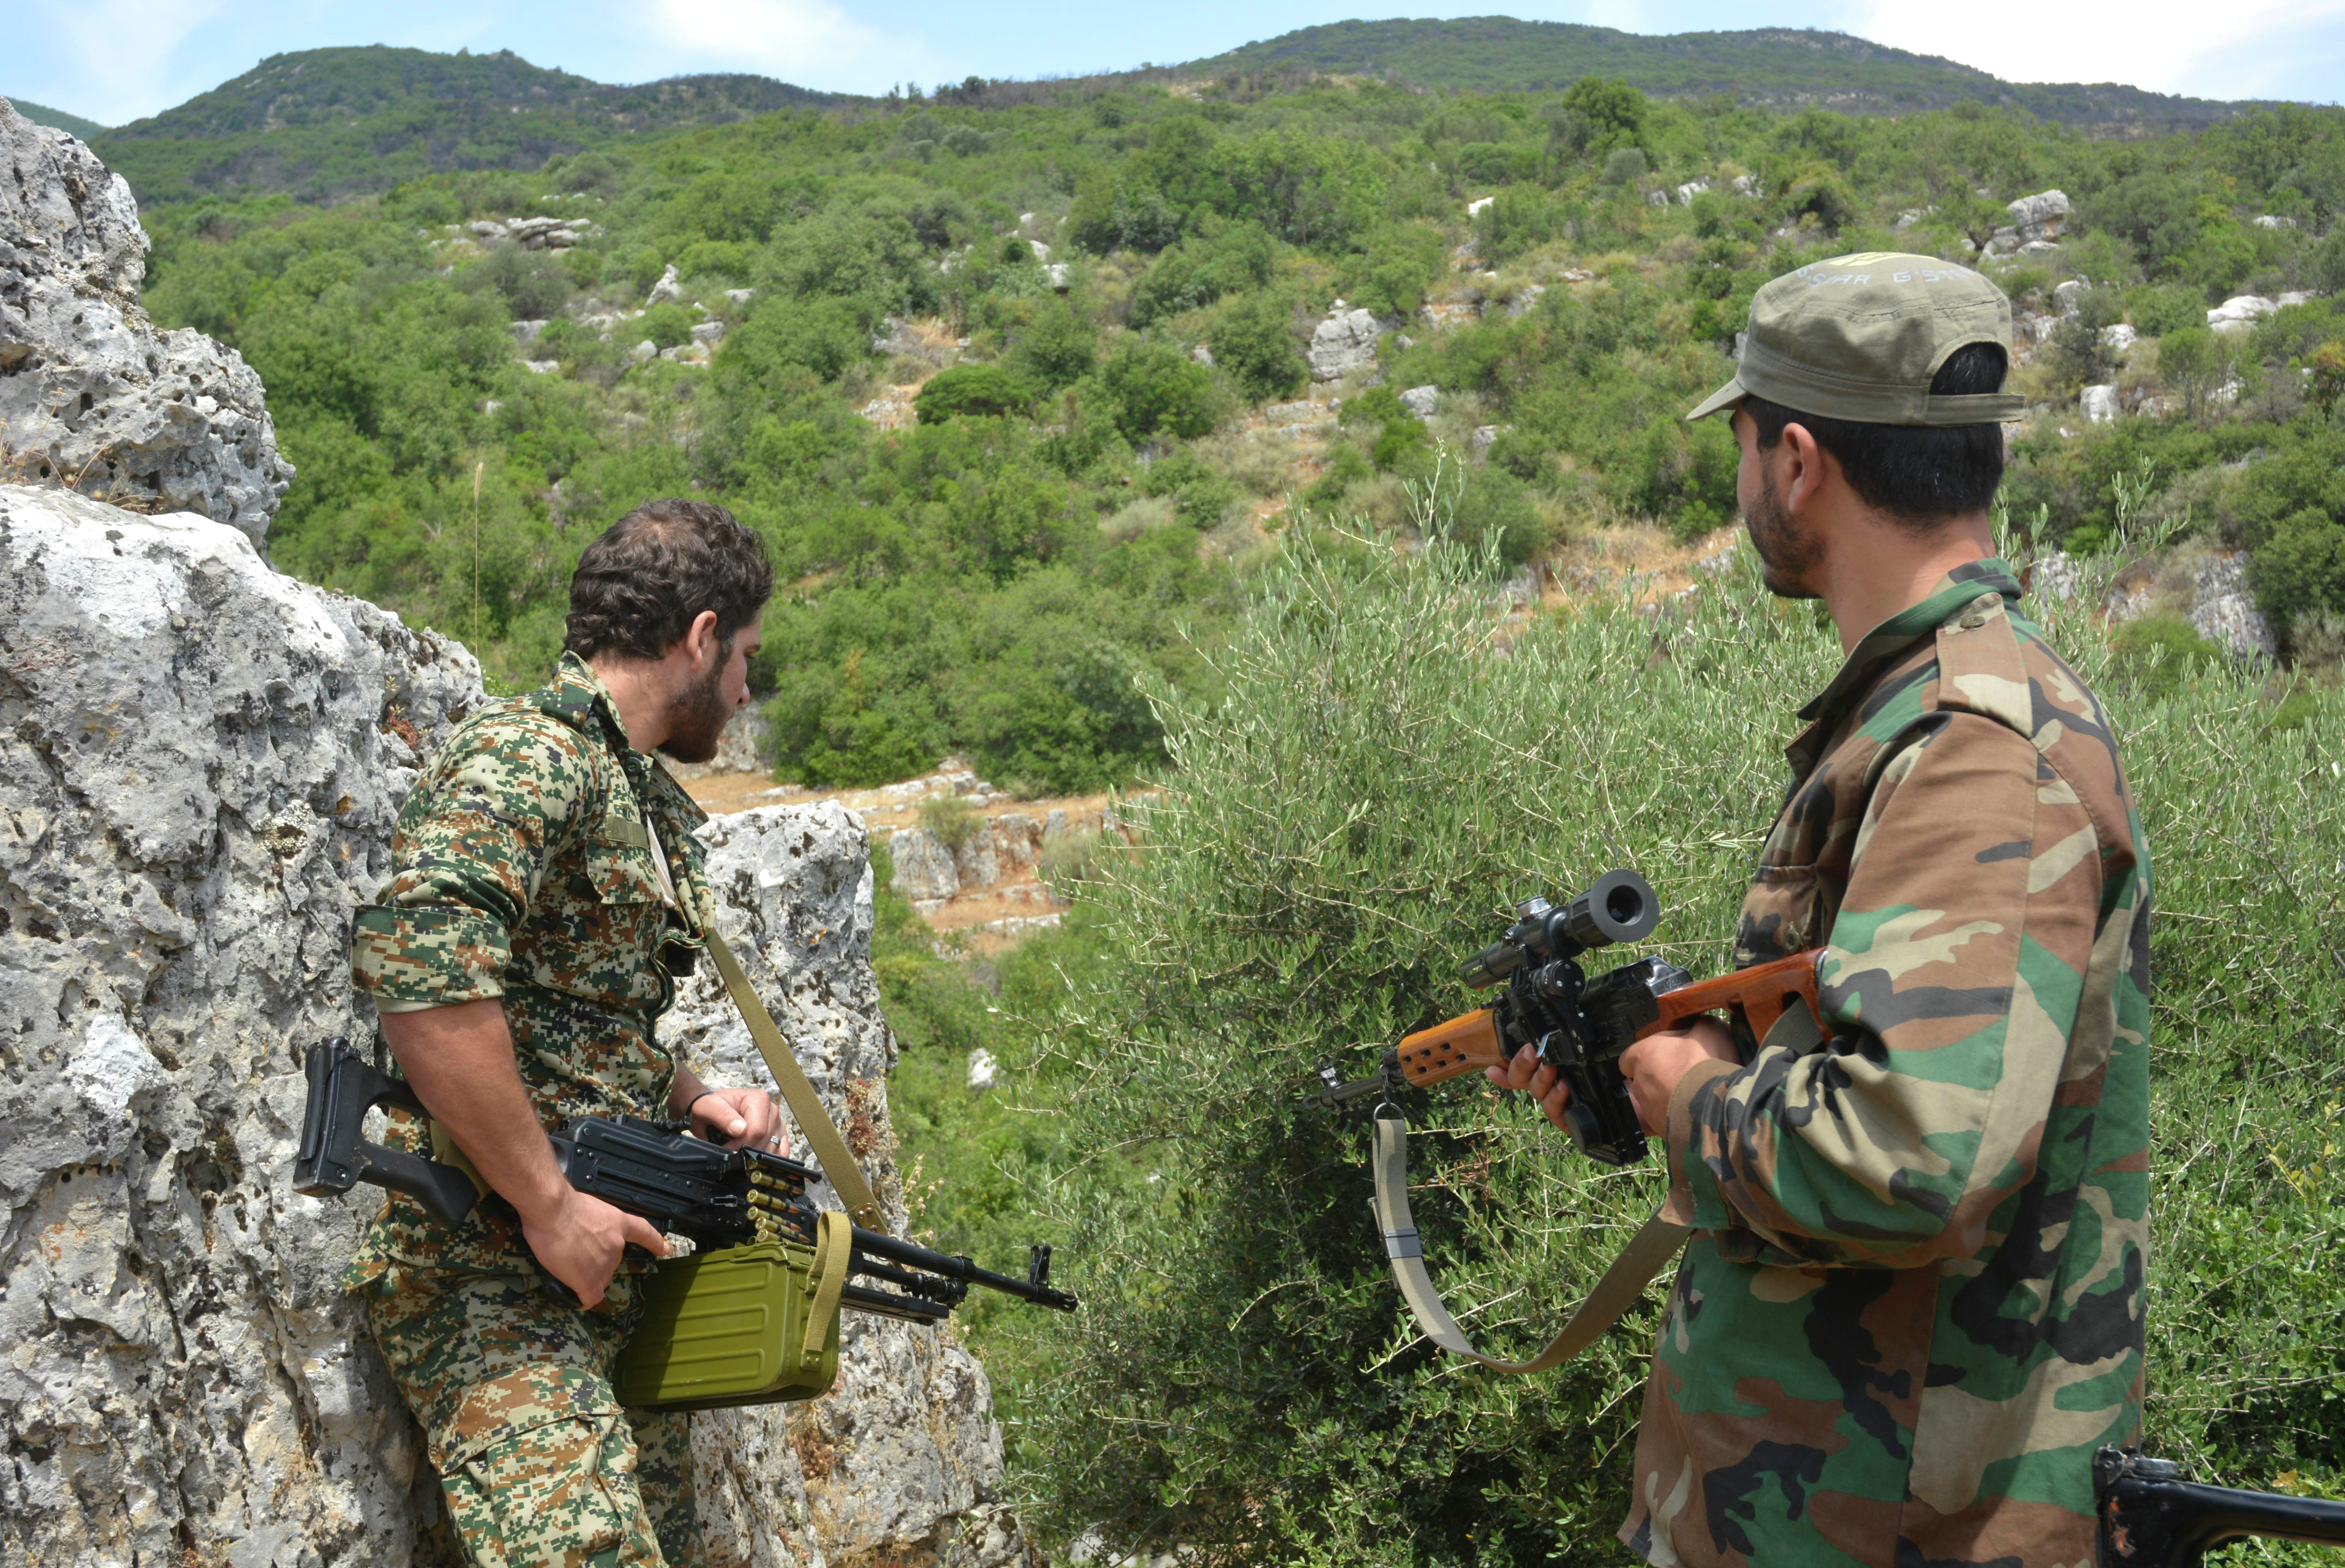 Syrian pro-government forces patrol an area in the Sahl al-Ghab, in Hama province, on June 7, 2015